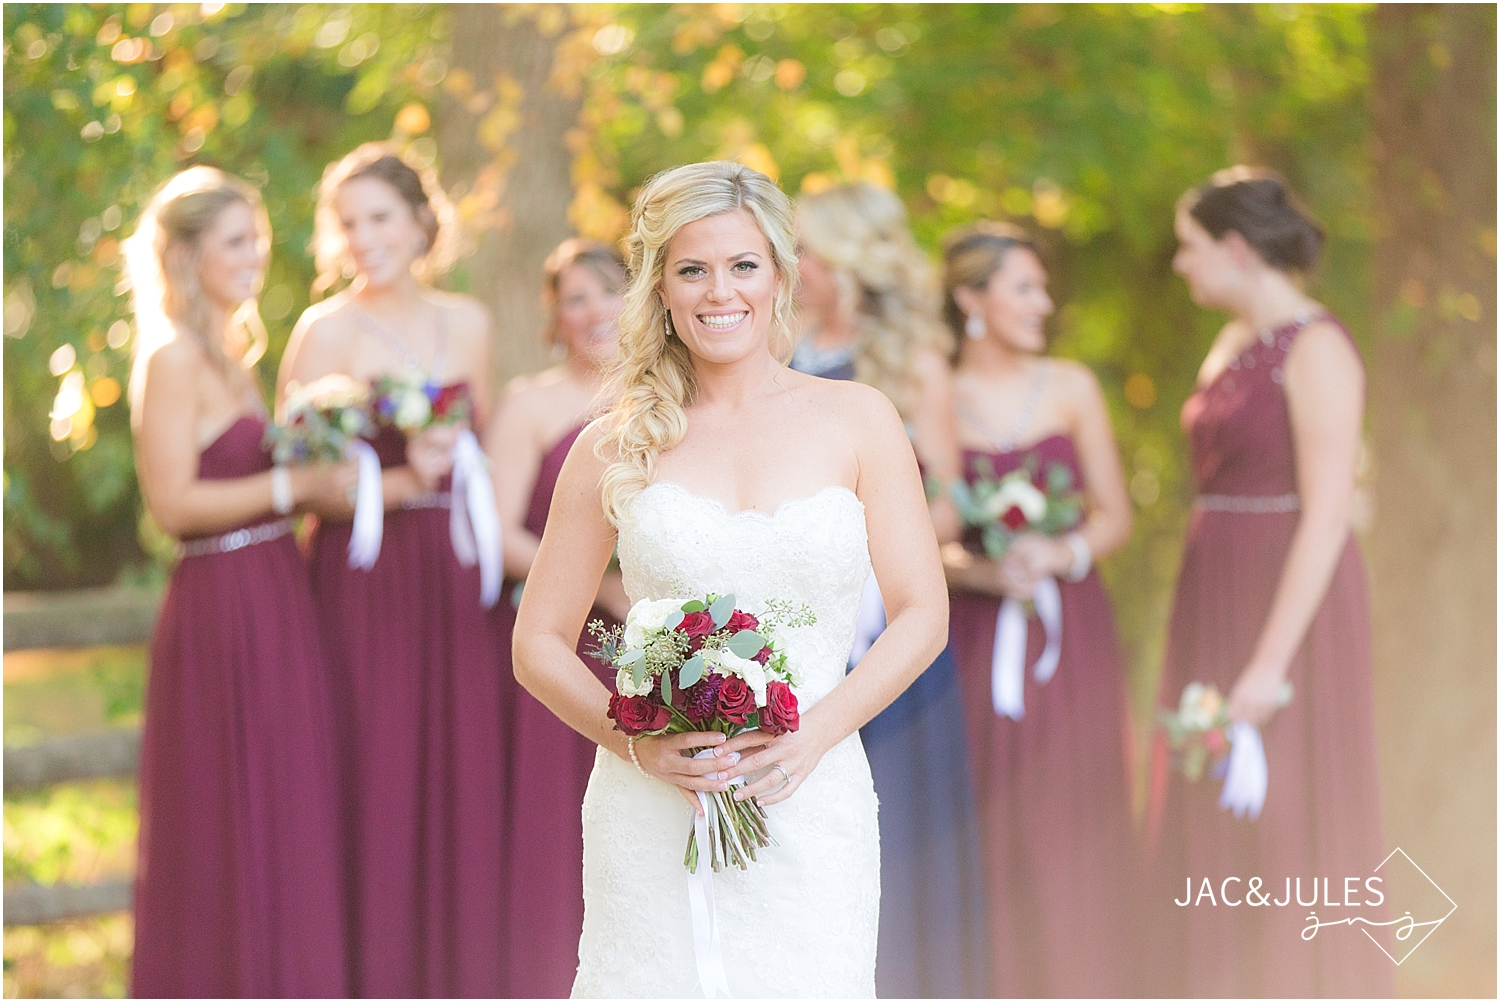 jacnjules photographs bride and bridesmaids wearing navy and maroon at Allaire State Park